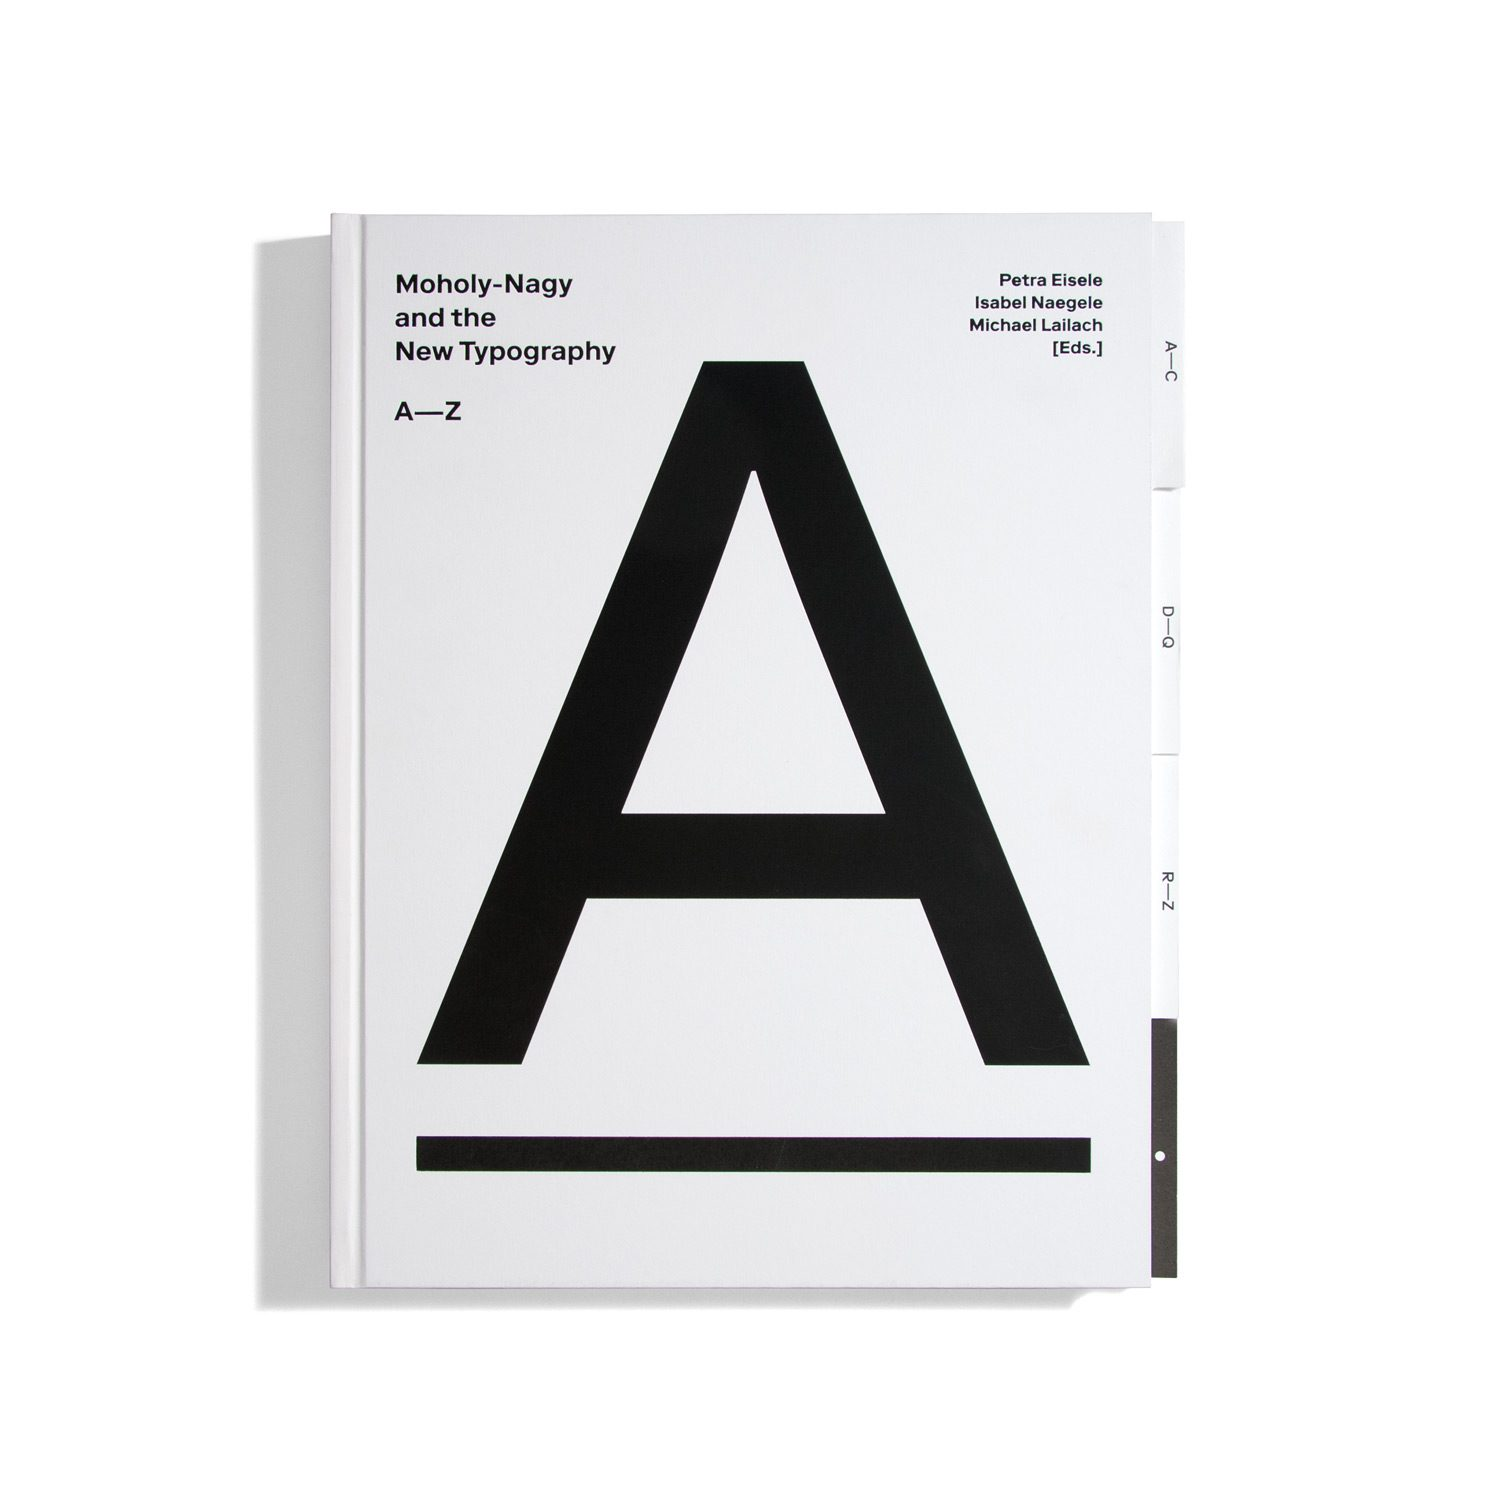 Moholy-Nagy and the New Typography